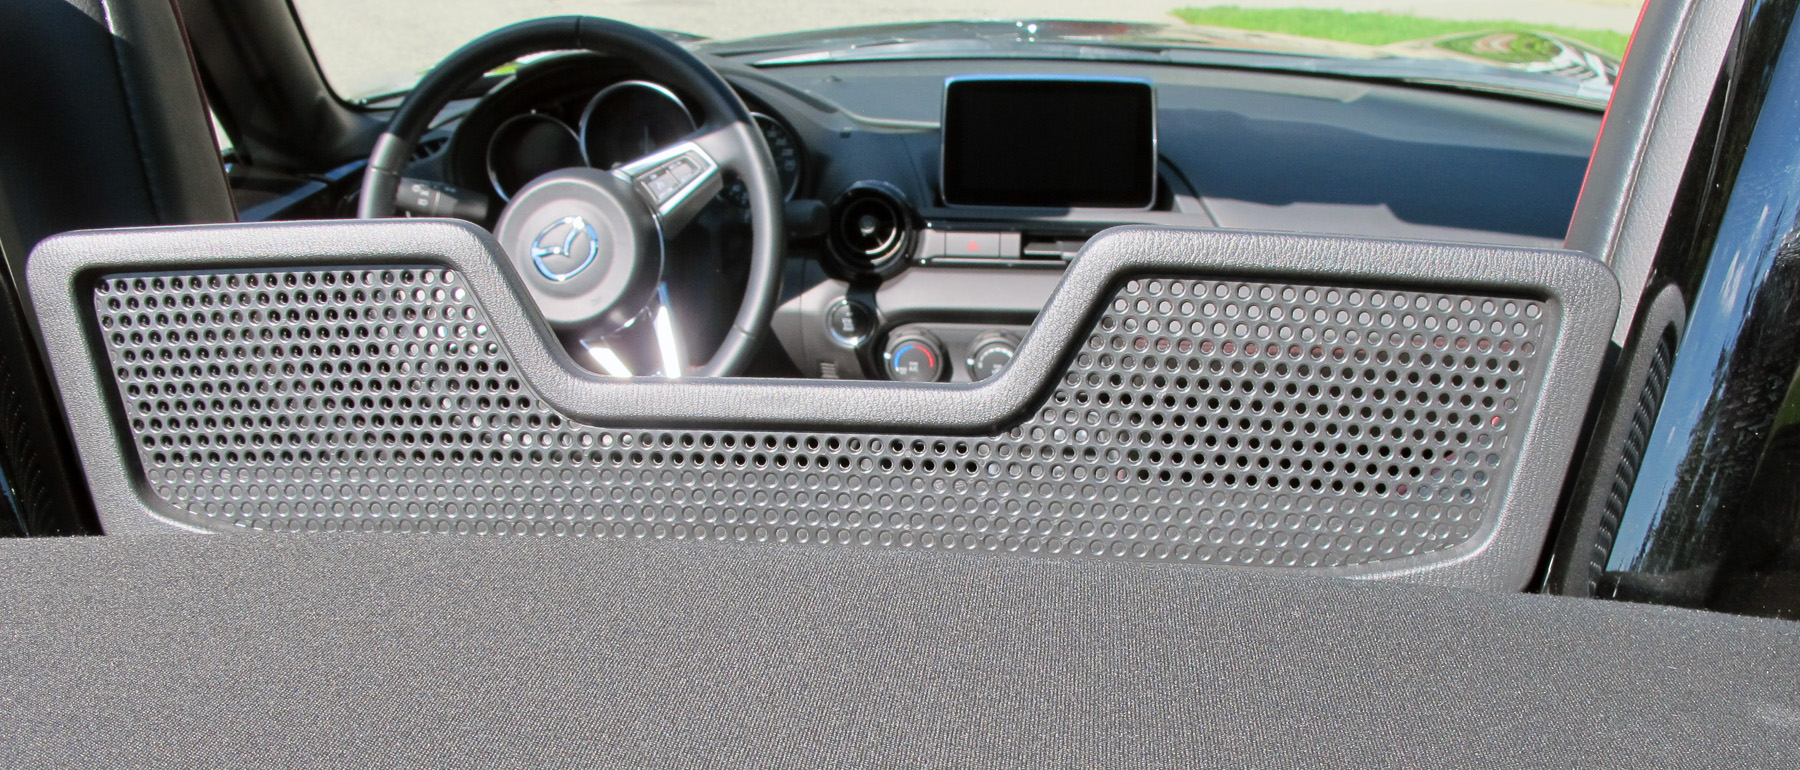 The soft top on the MX-5 is easily raised and lowered by one hand and features a glass rear window with defroster and includes a draft blocker between the seats.